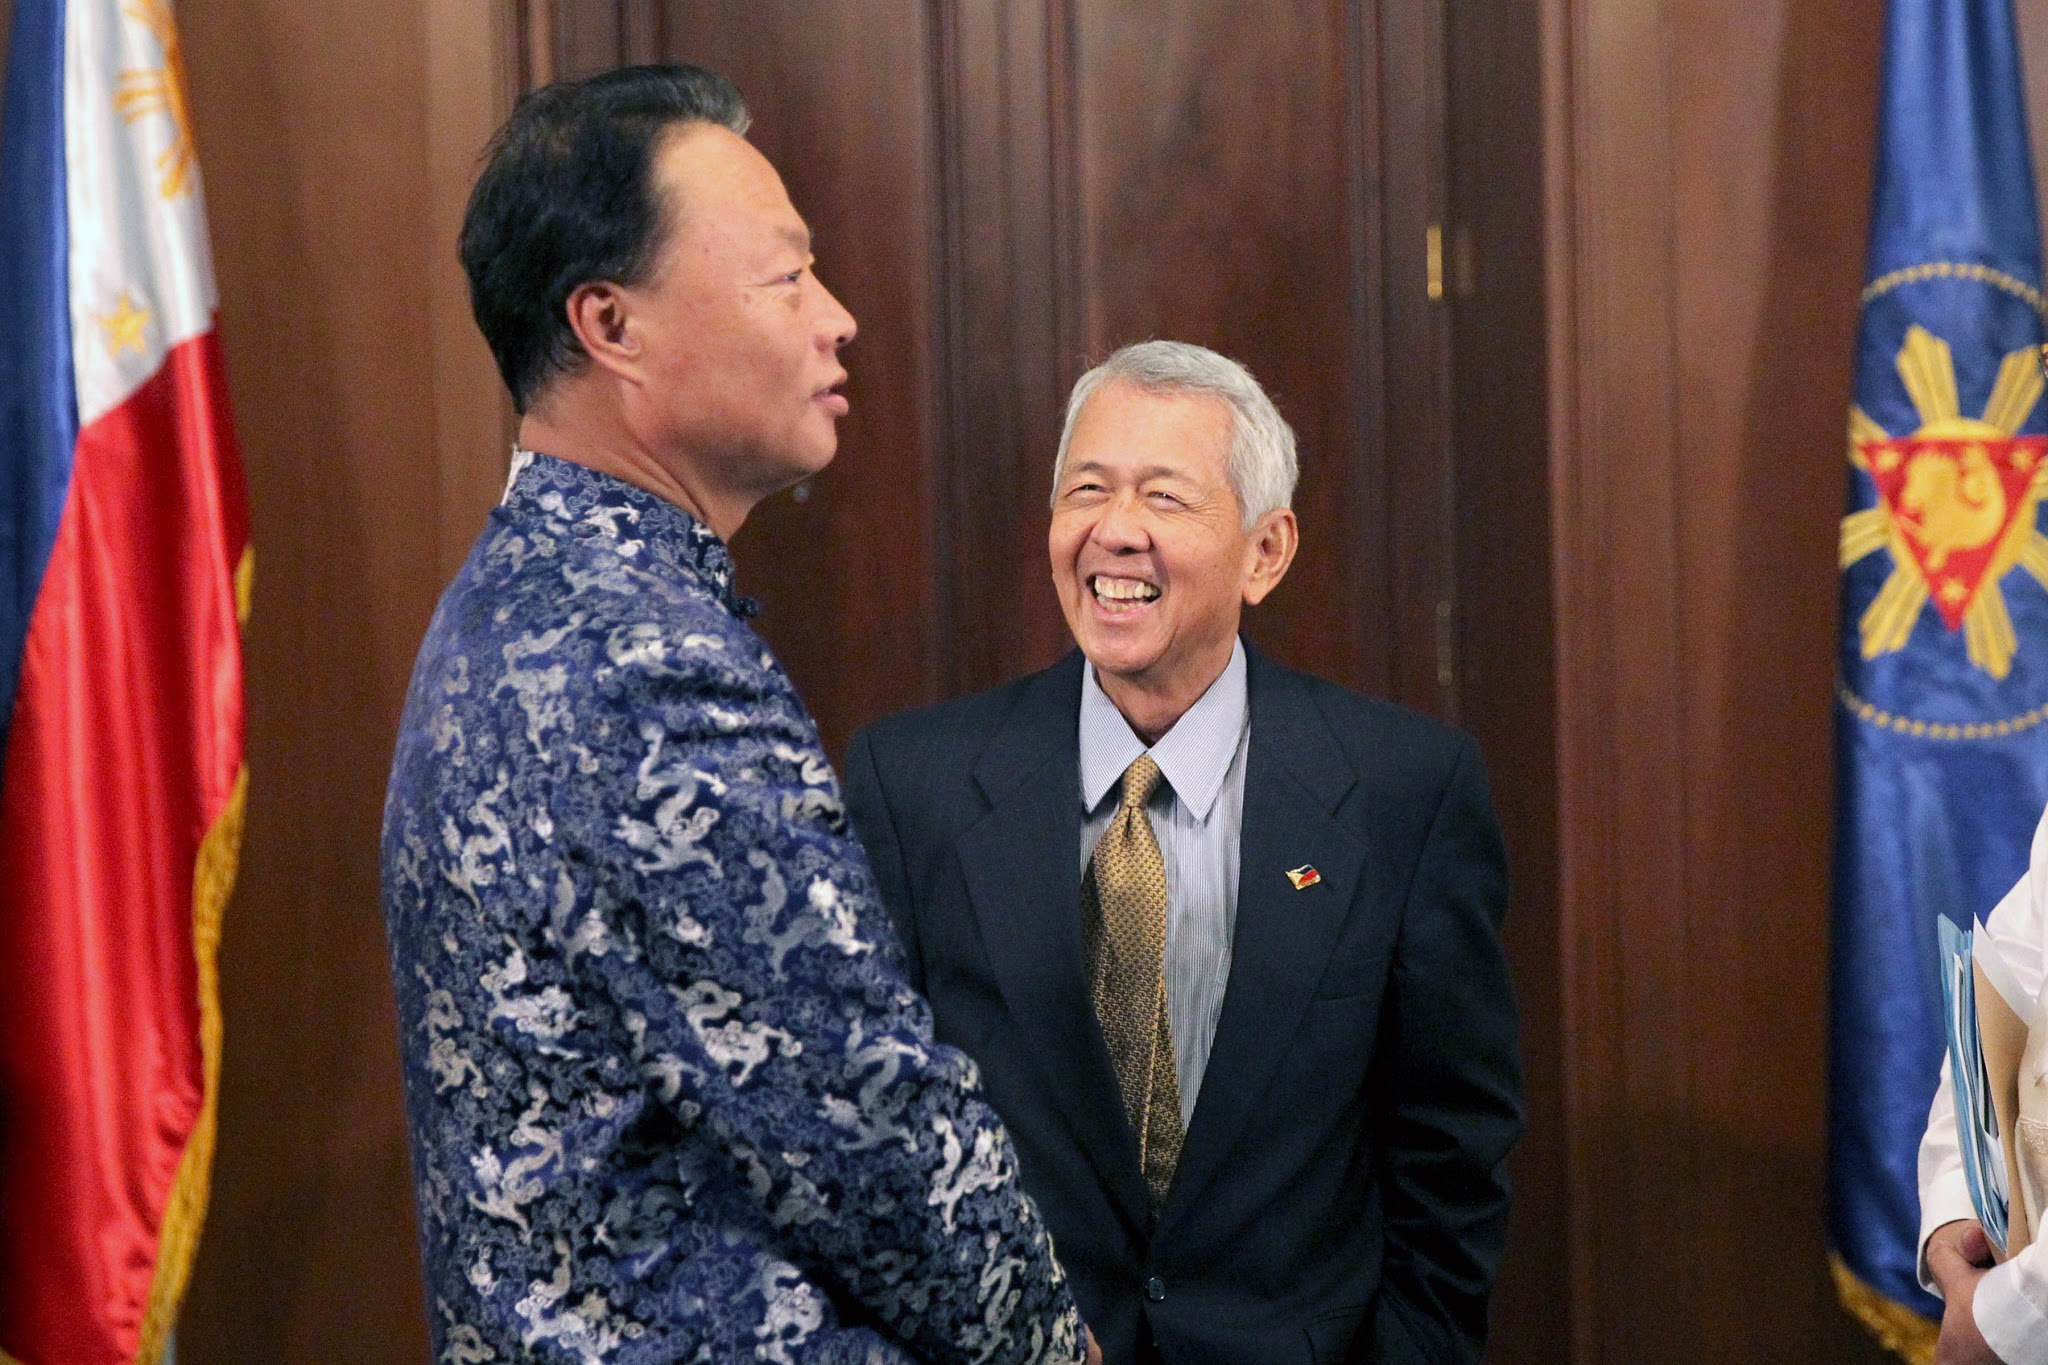 FILE: Foreign Secretary Perfecto Yasay Jr. WITH Chinese Ambassador to the Philippines Zhao Jinhua at Malacañang Palace on July 7, 2016. (Presidential Photographers' Division)